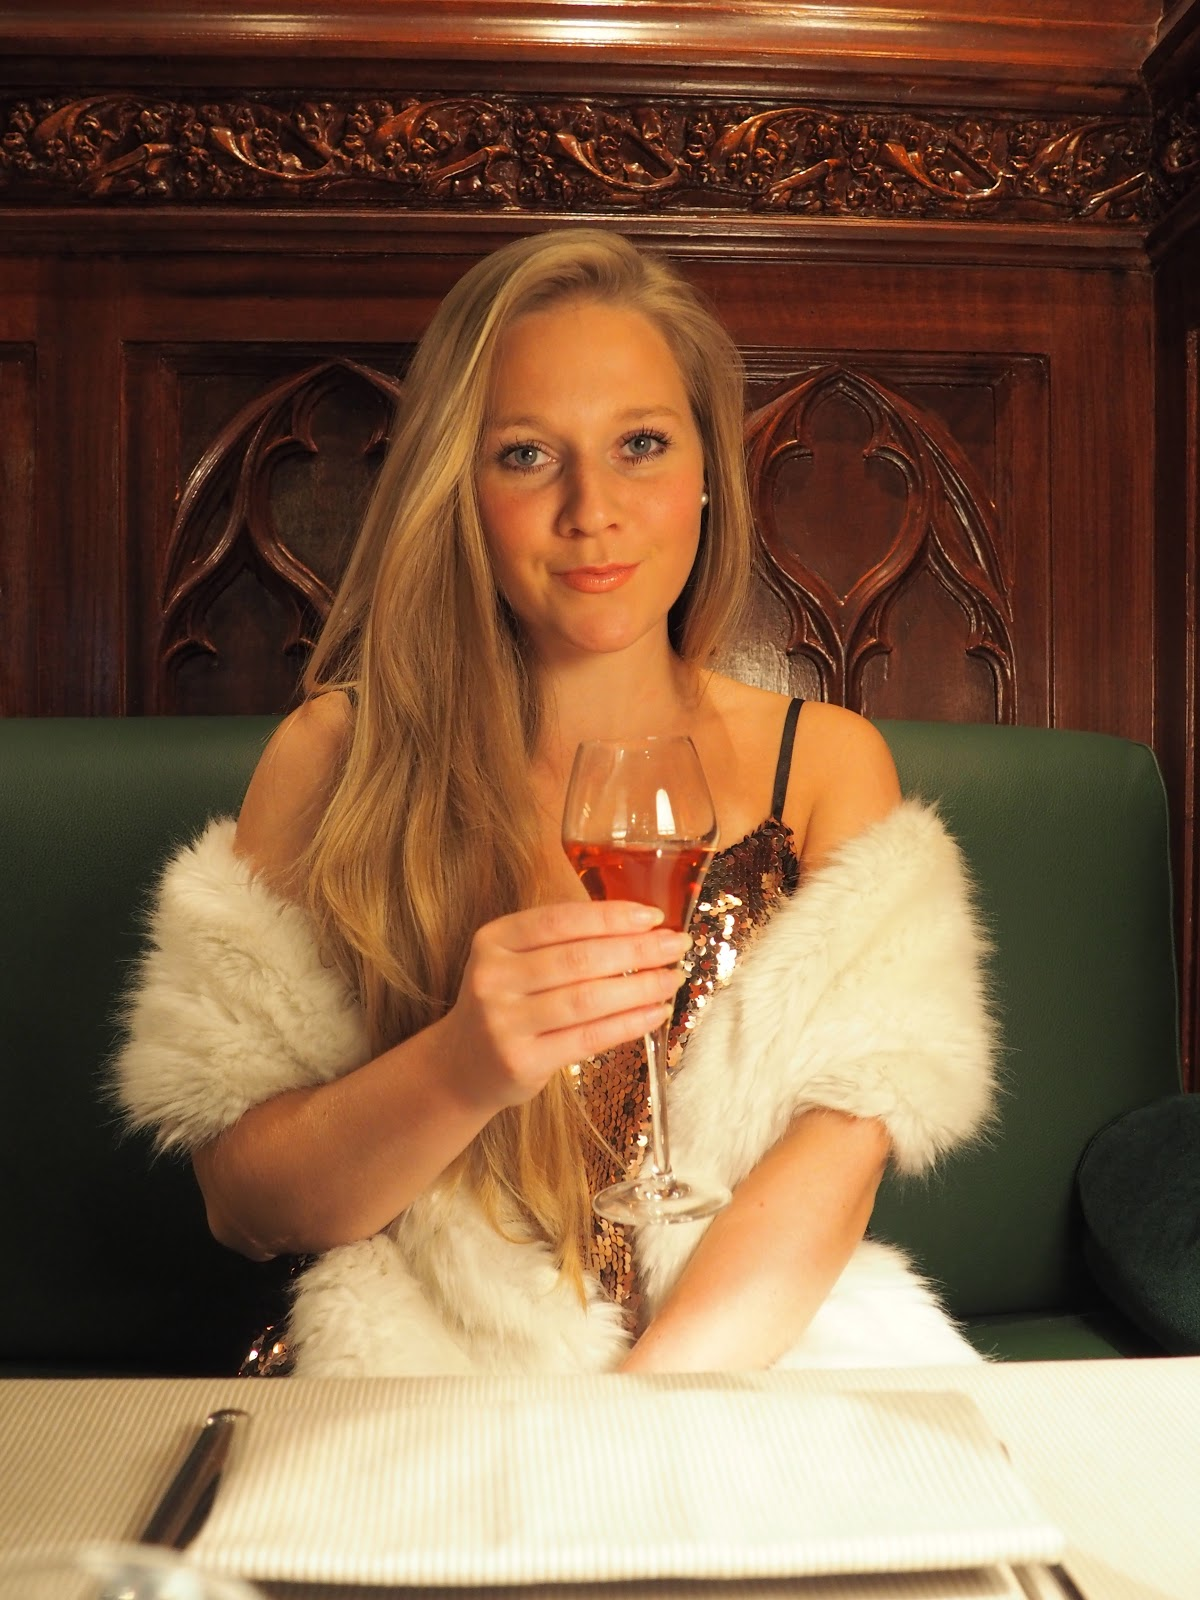 Blonde girl sipping champagne in The Dukes Bar, Hotel Westminster, Paris